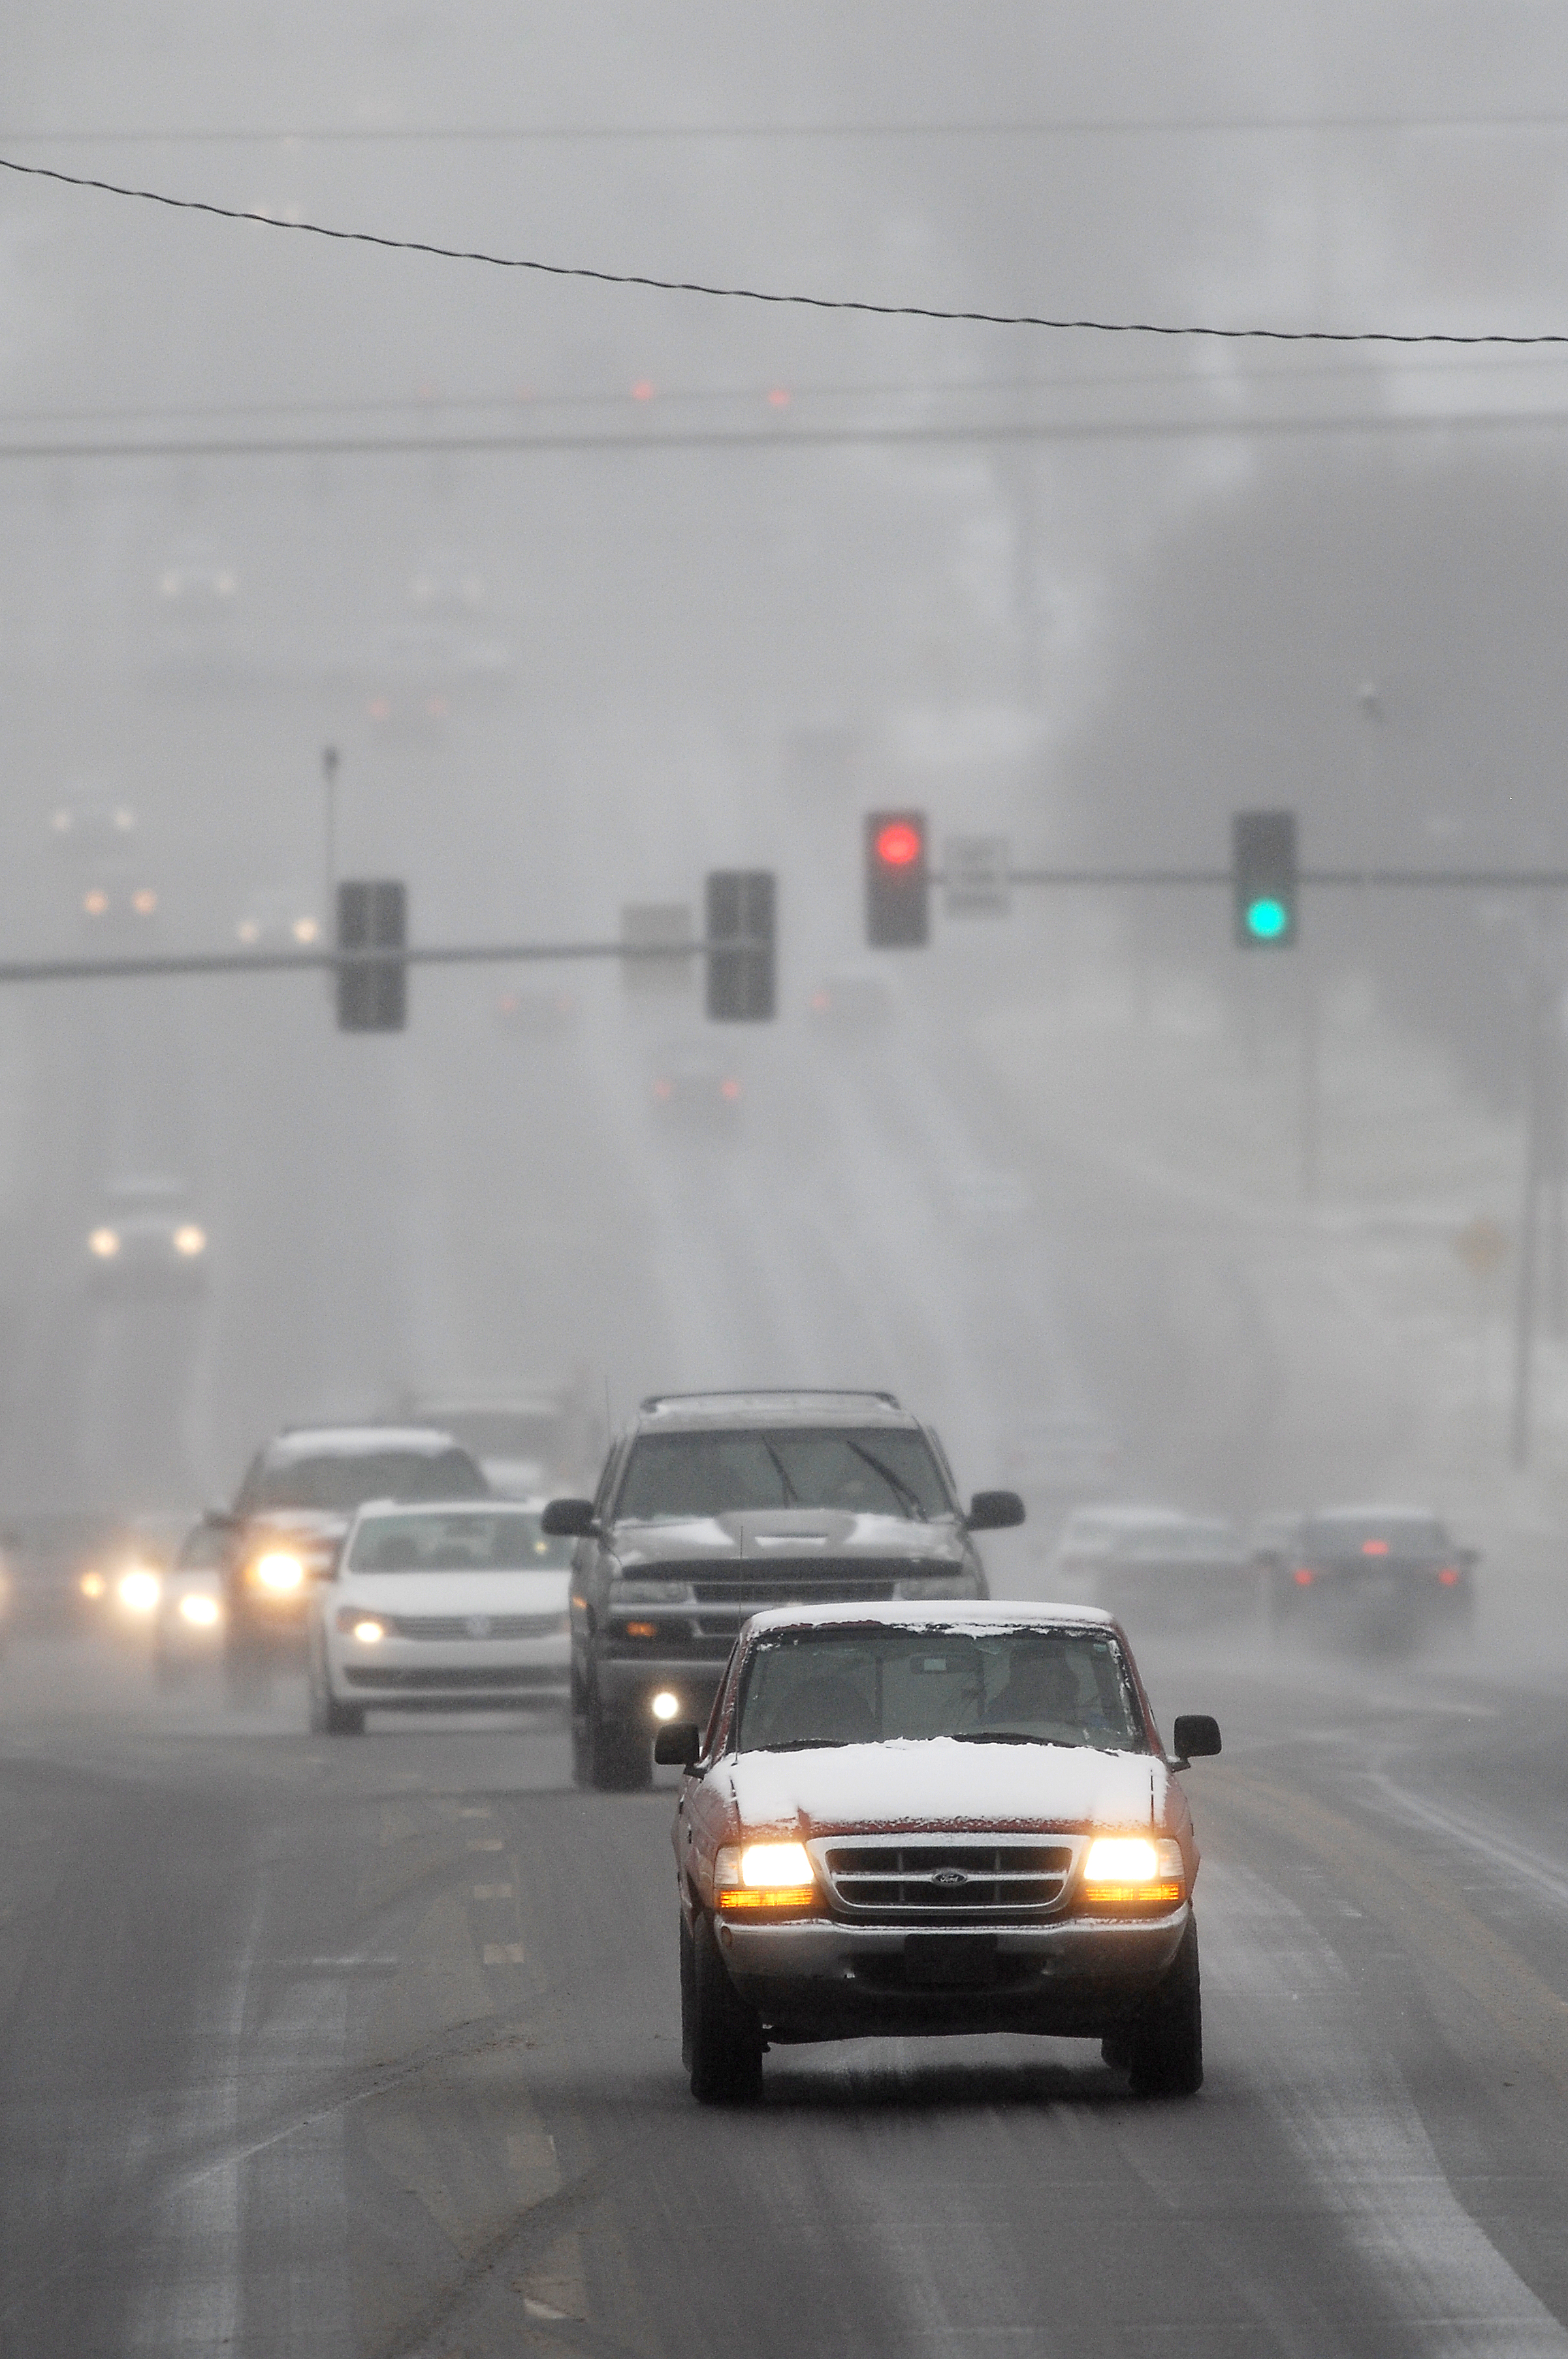 See the streets: Check out street conditions with traffic